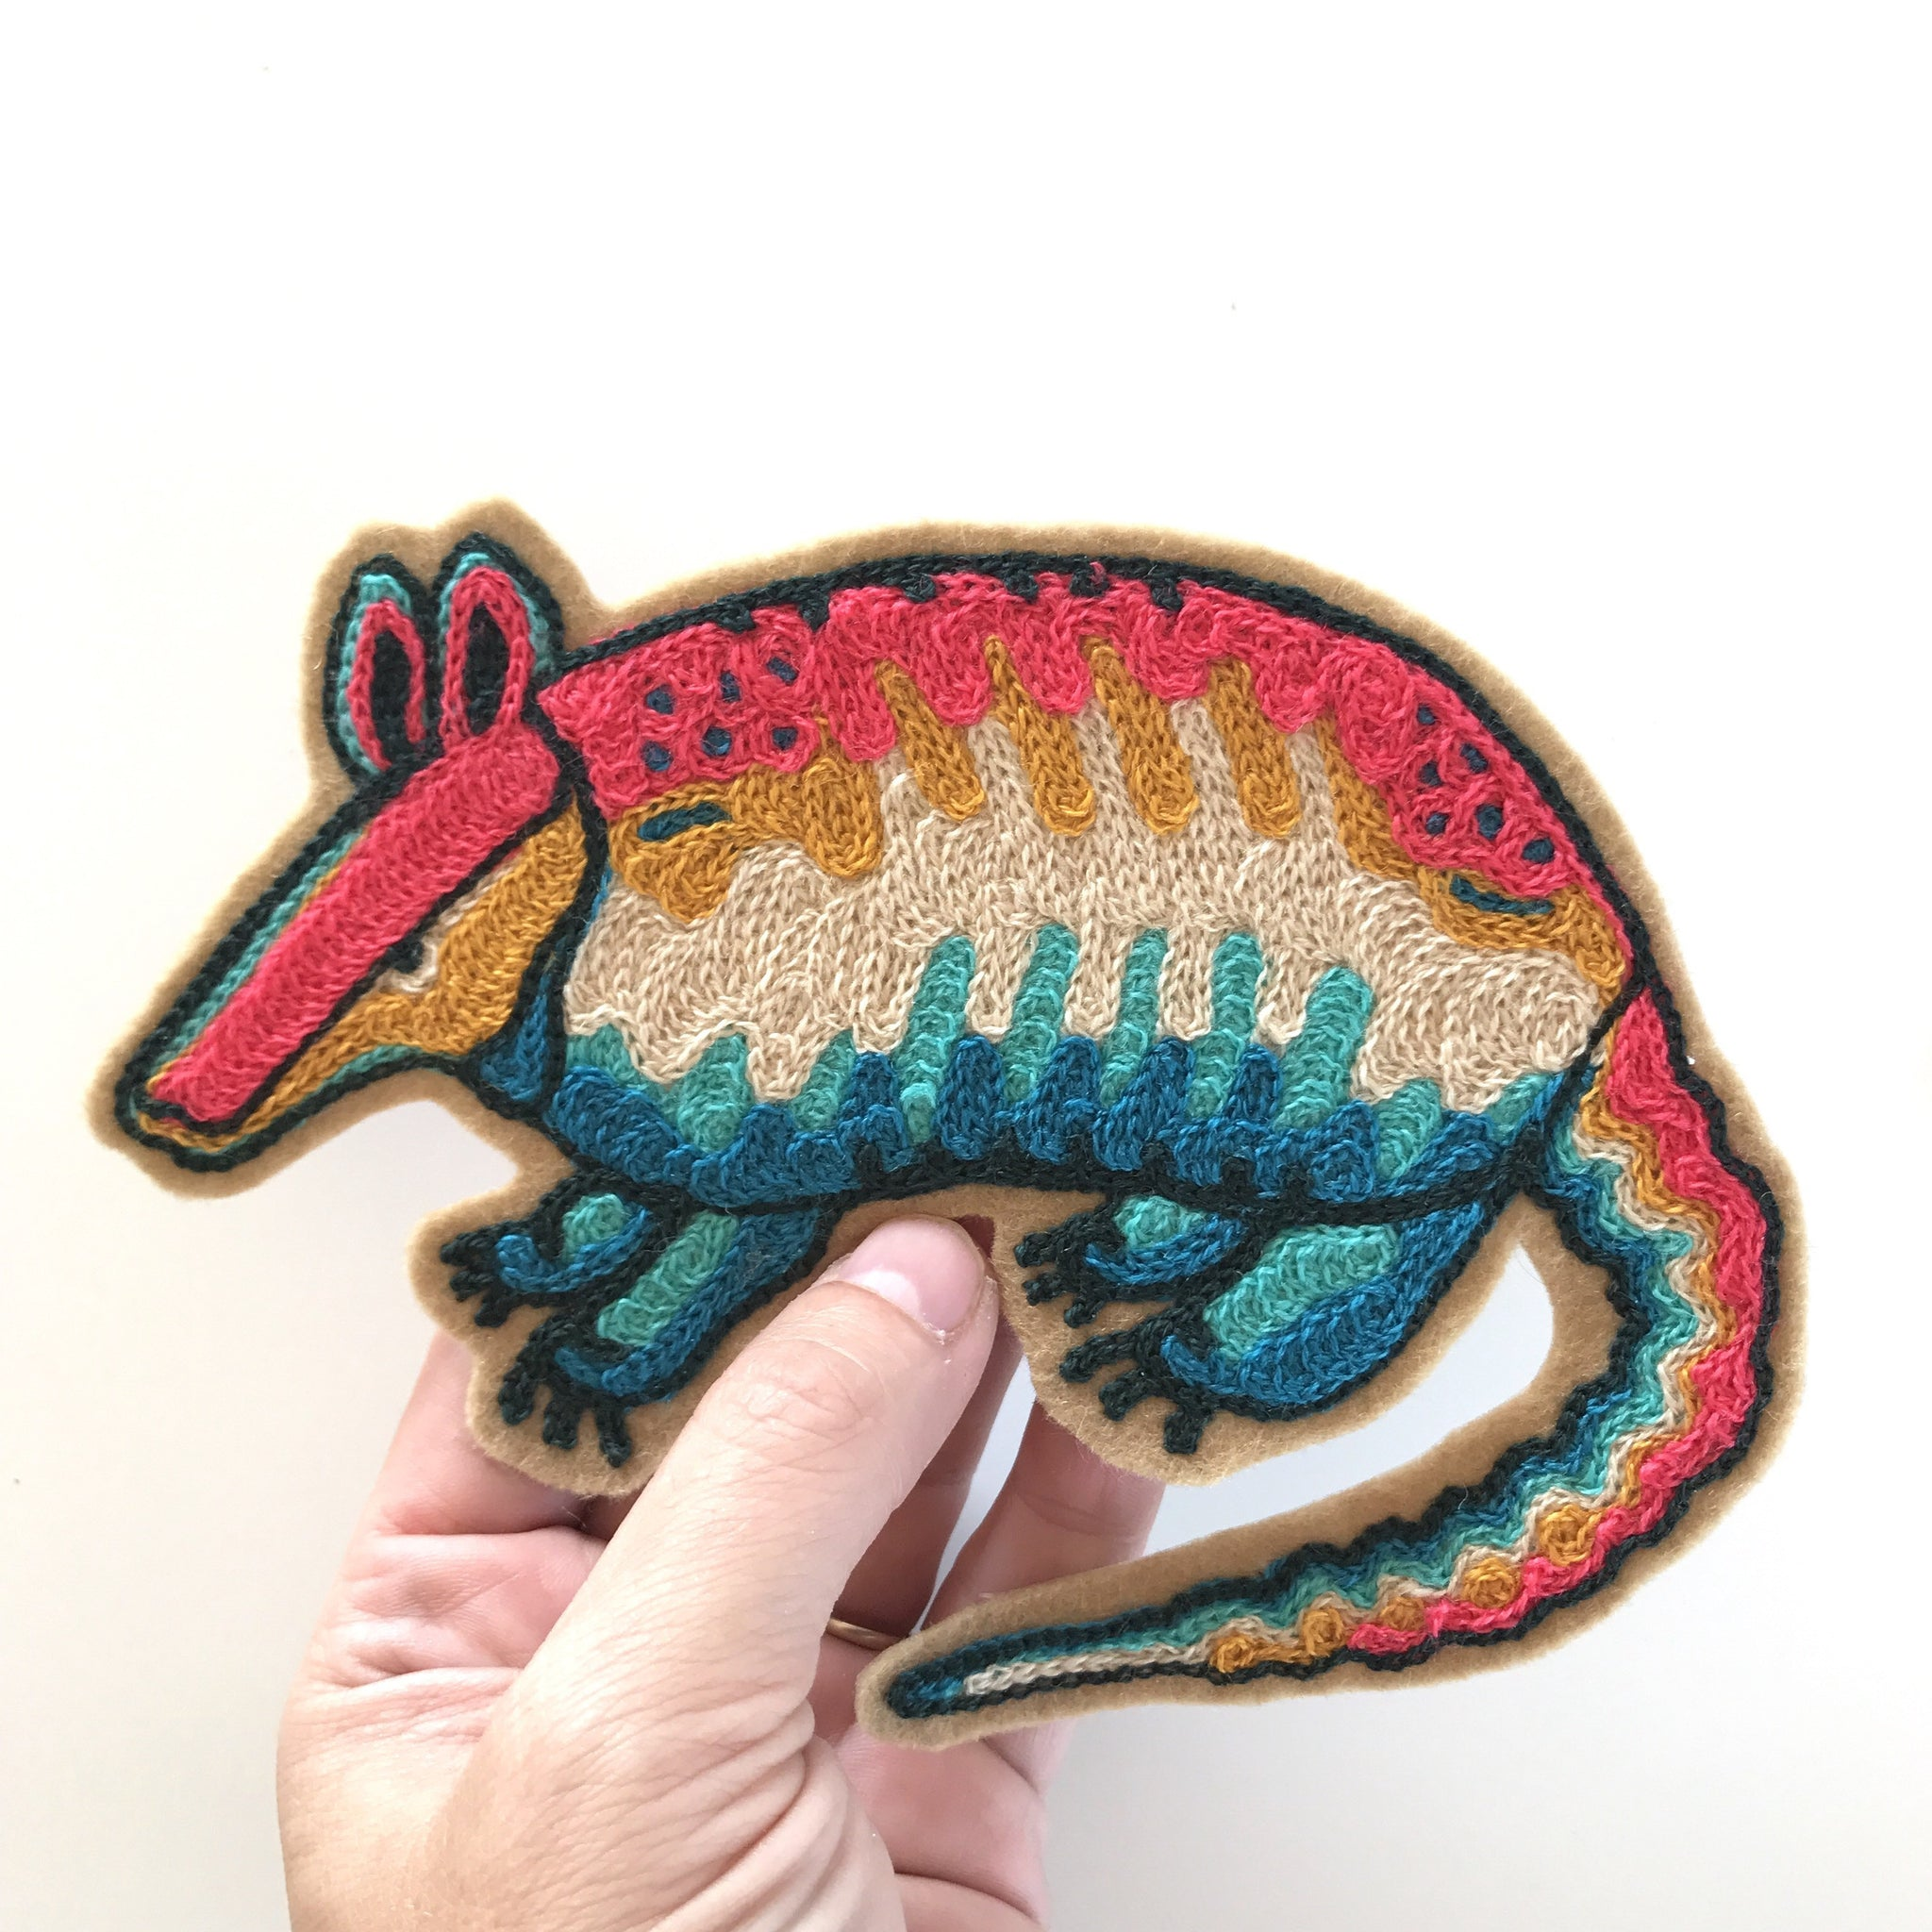 Neon Armadillo Embroidered Patch